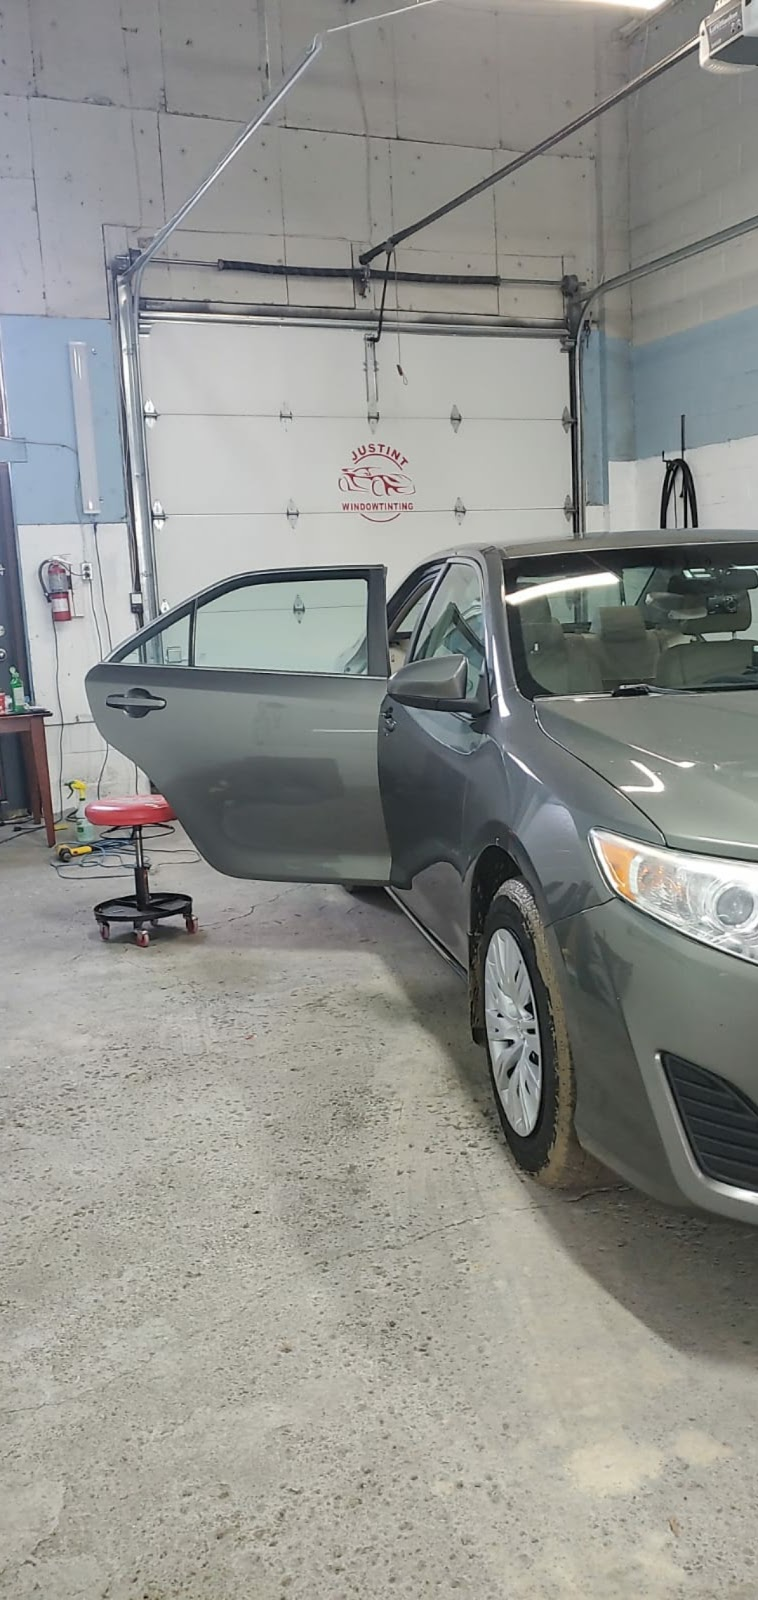 JUSTINT WINDOW TINTING   car repair   4801 Keele St unit# 3, North York, ON M3J 3A4, Canada   6473308033 OR +1 647-330-8033